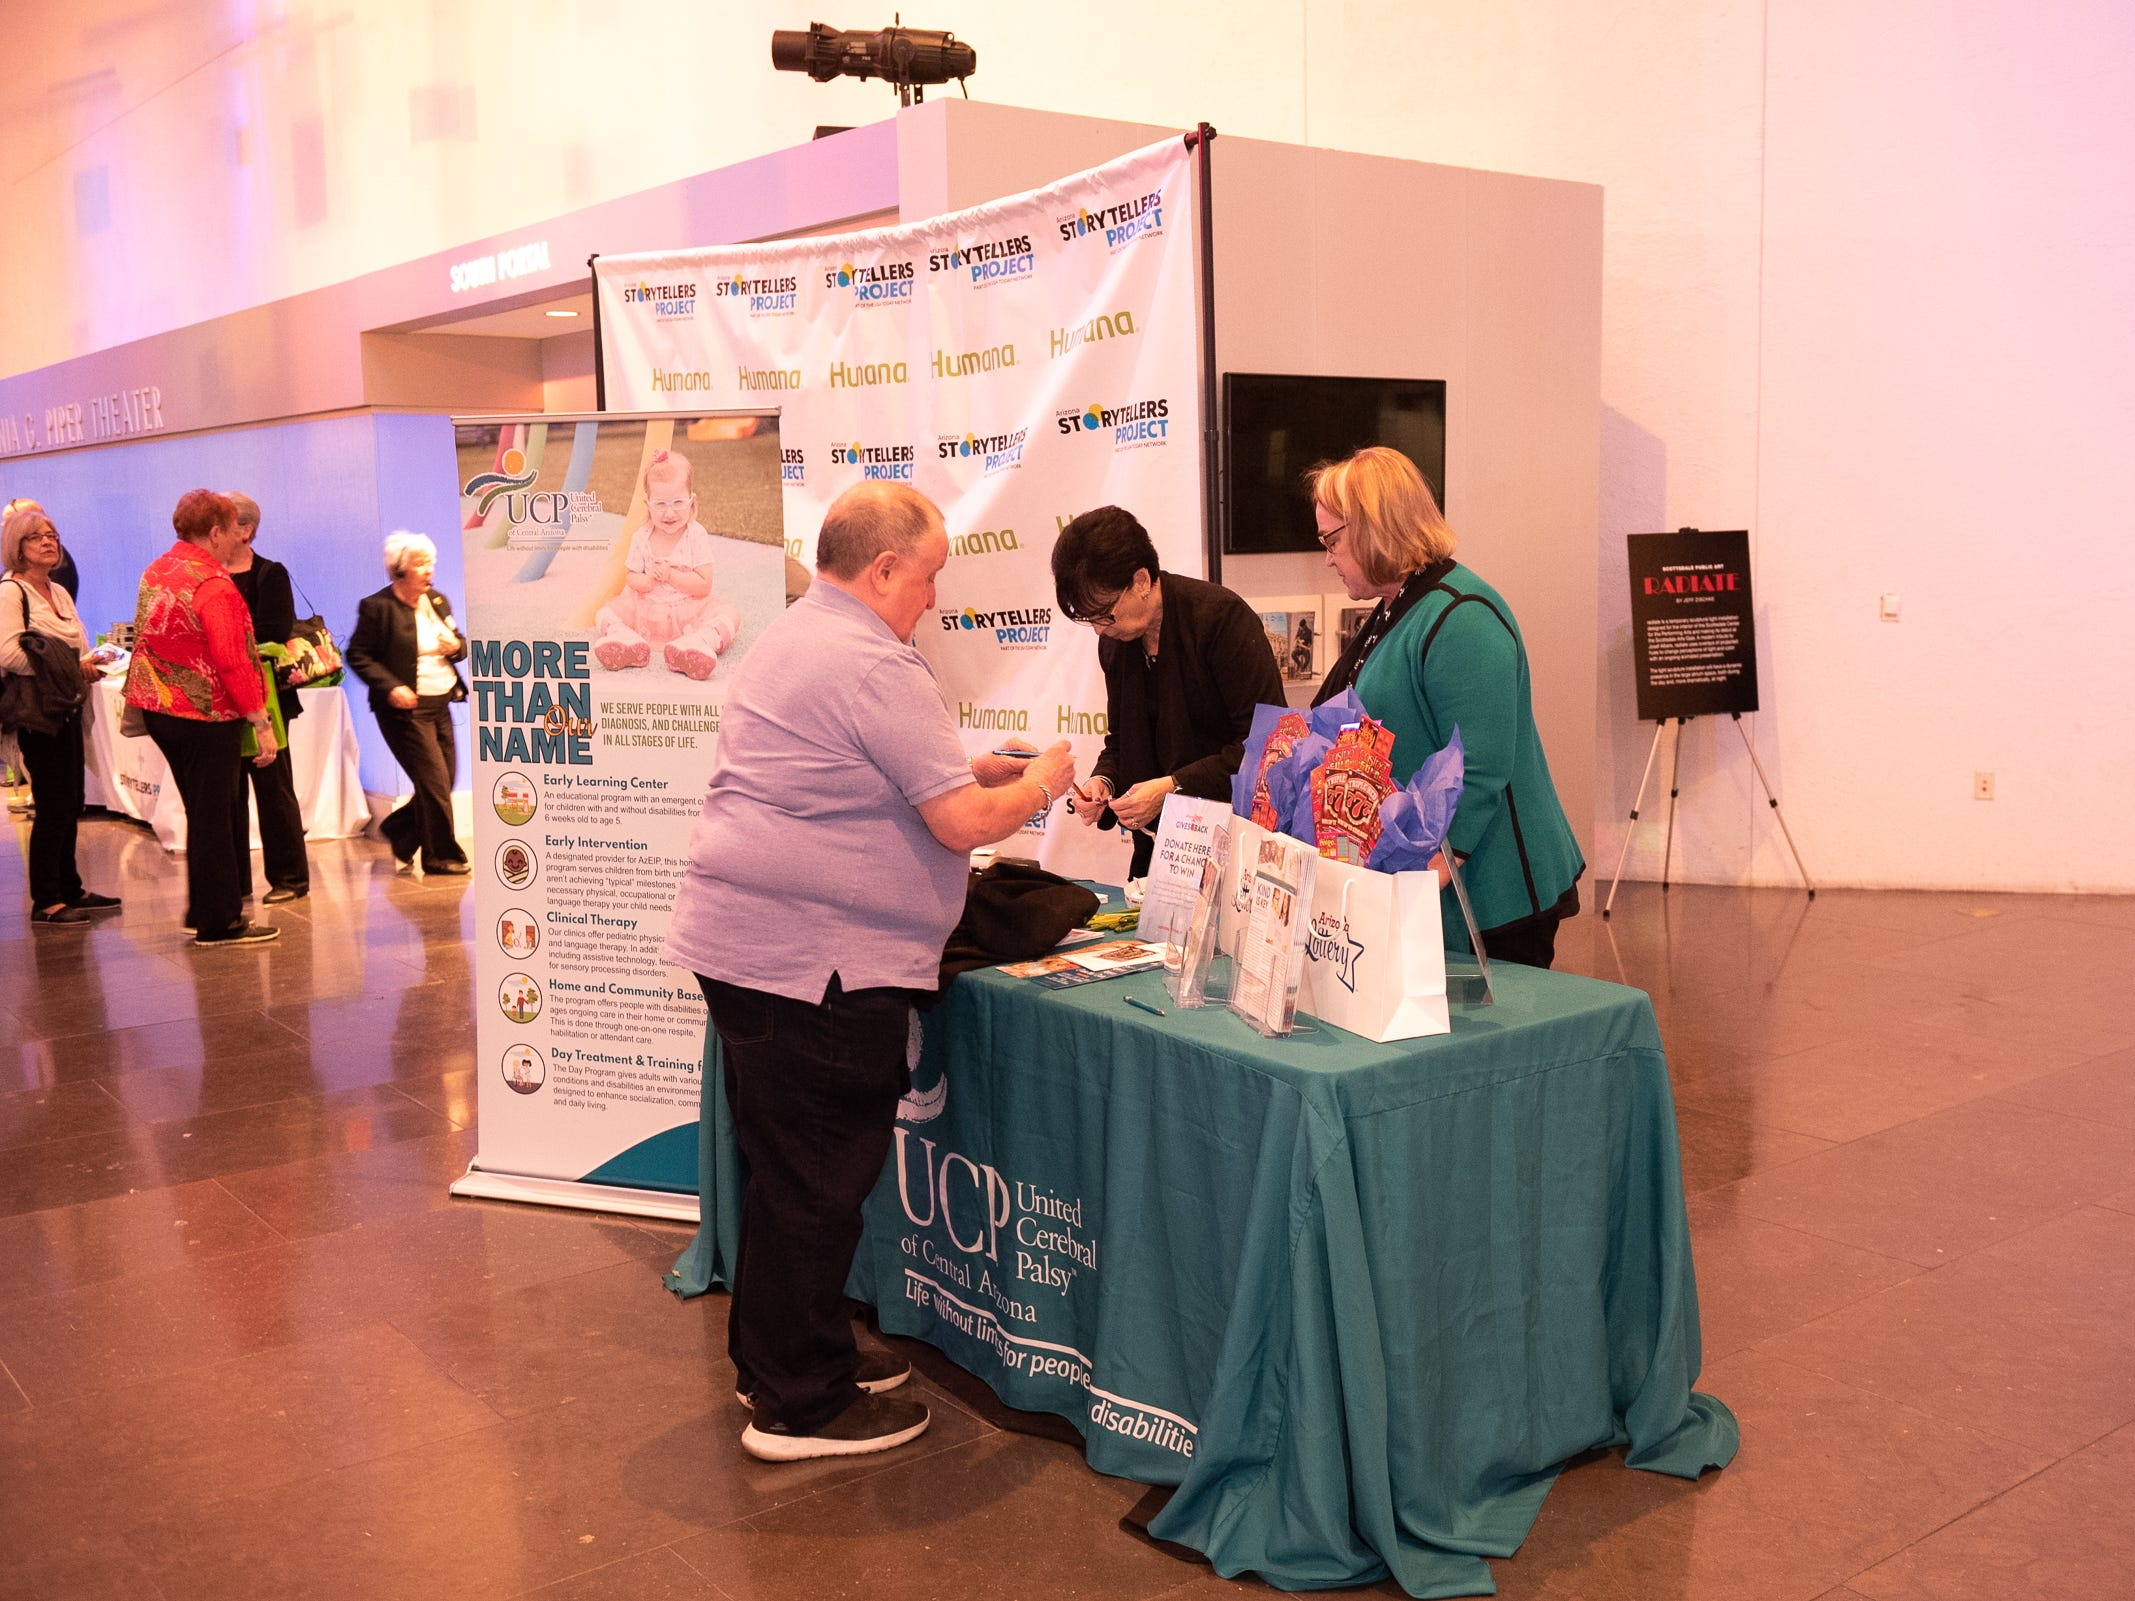 """An attendee visits the United Cerebral Palsy booth during """"Arizona Storytellers: Romance or Not"""" at the Scottsdale Center for Performing Arts on Wednesday, Feb. 13, 2019."""